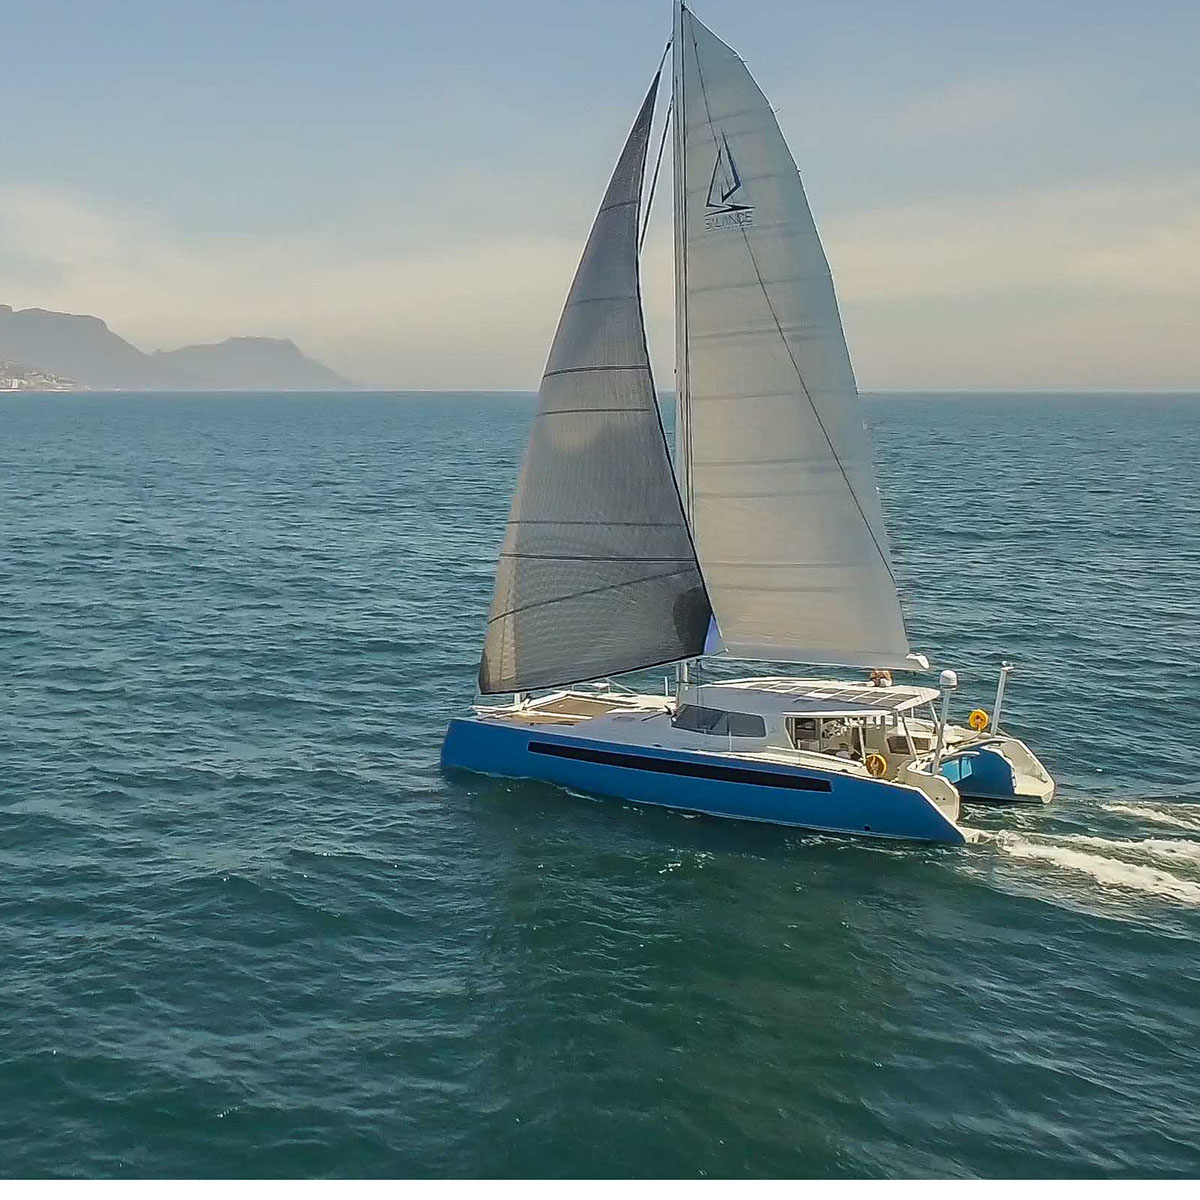 SAIL Magazine Reviews the Balance 526